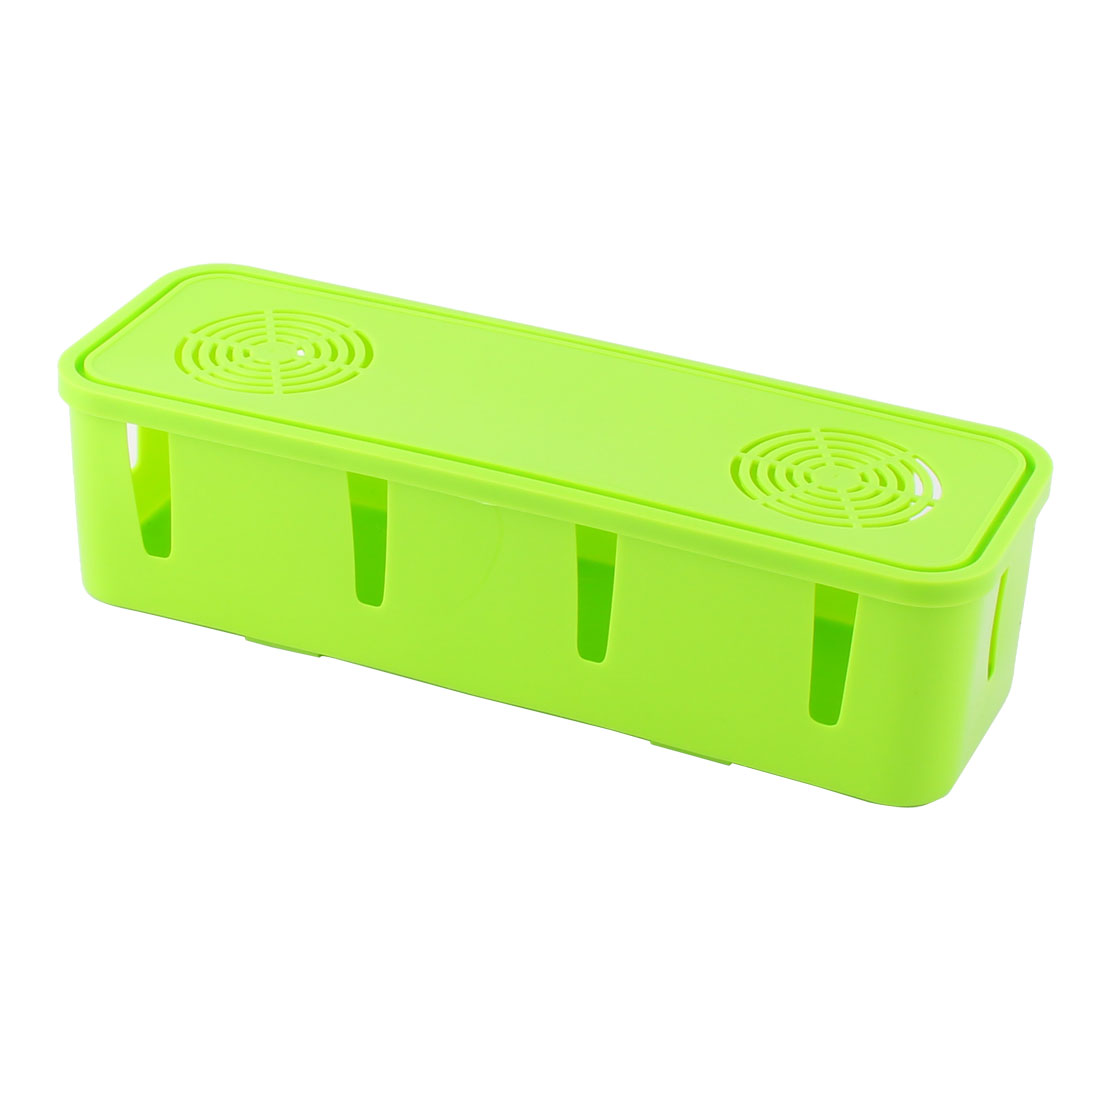 Household Plastic Rectangle Shape Power Cord Socket Storage Case Box Green